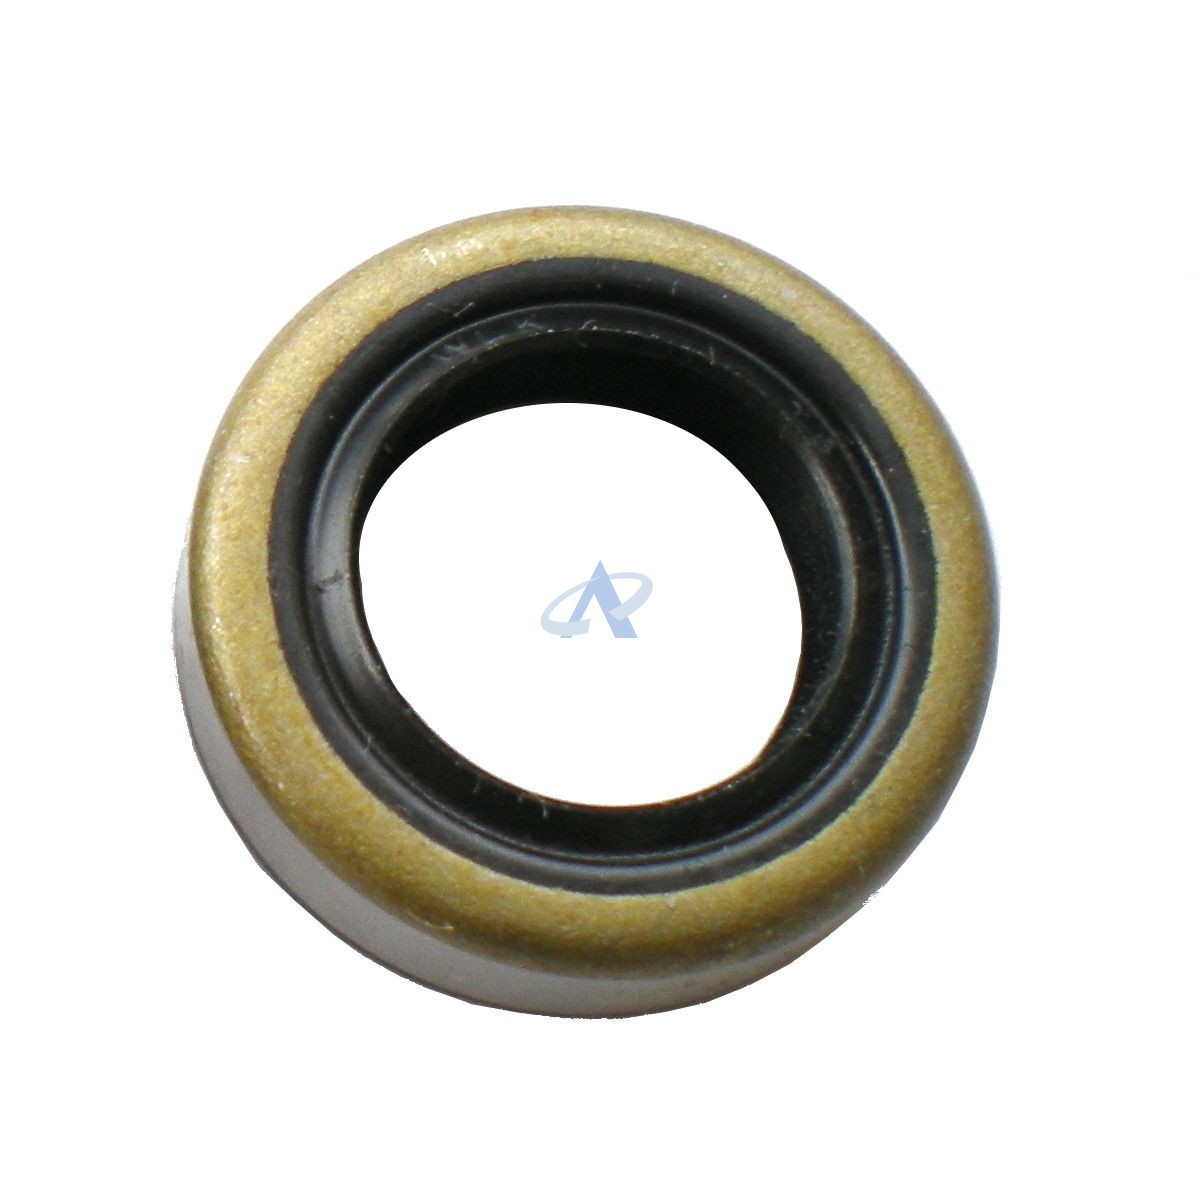 Oil Seal / Radial Ring for DOLMAR Chainsaws, Power Cutters [#962900052]